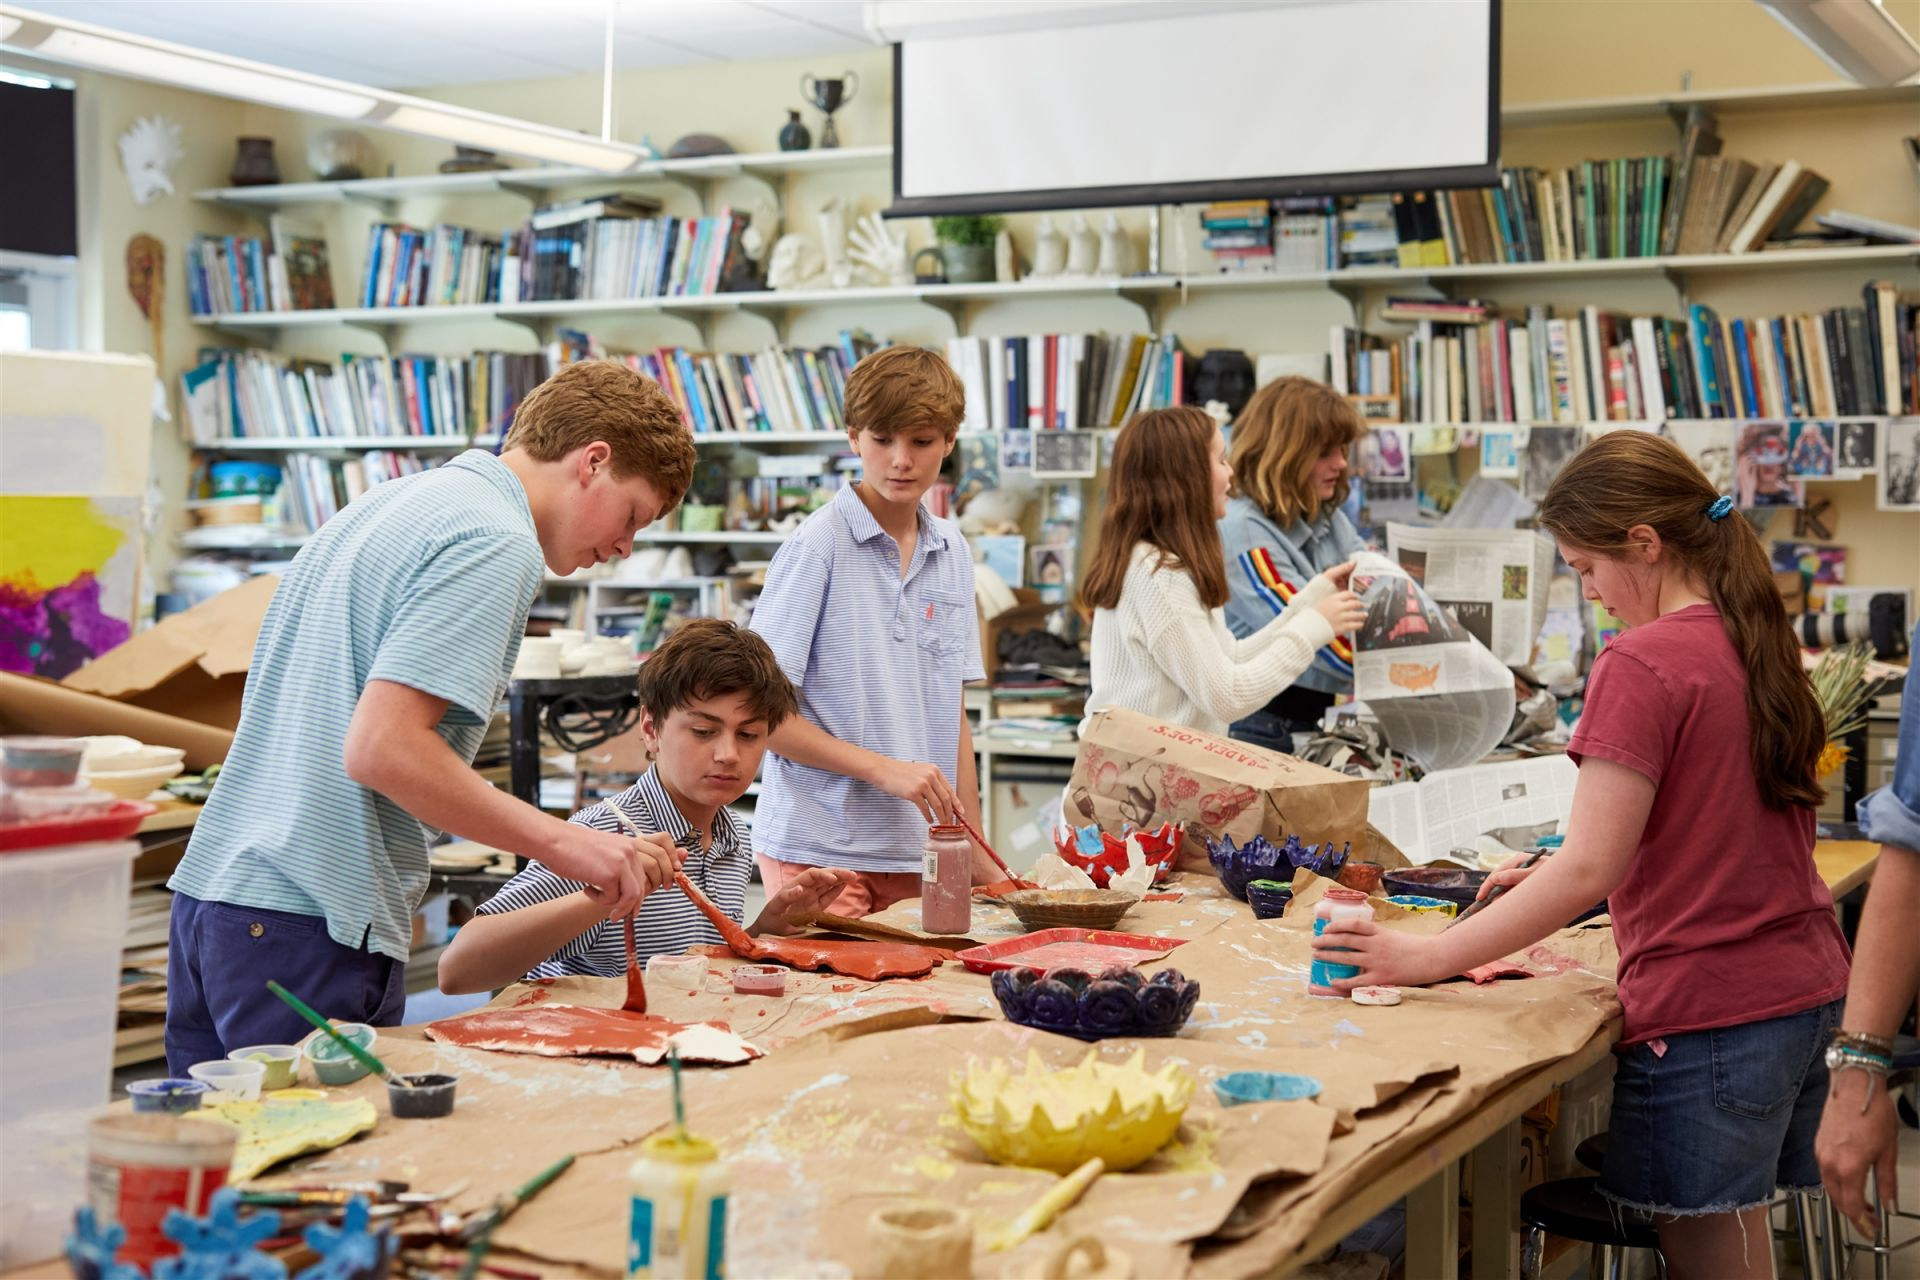 An Upper School art classroom: Students in Grades 7-9 can choose from art electives that include drawing, painting, printmaking and photography.  Regular field trips to area and New York City museums enhance the students' arts education.